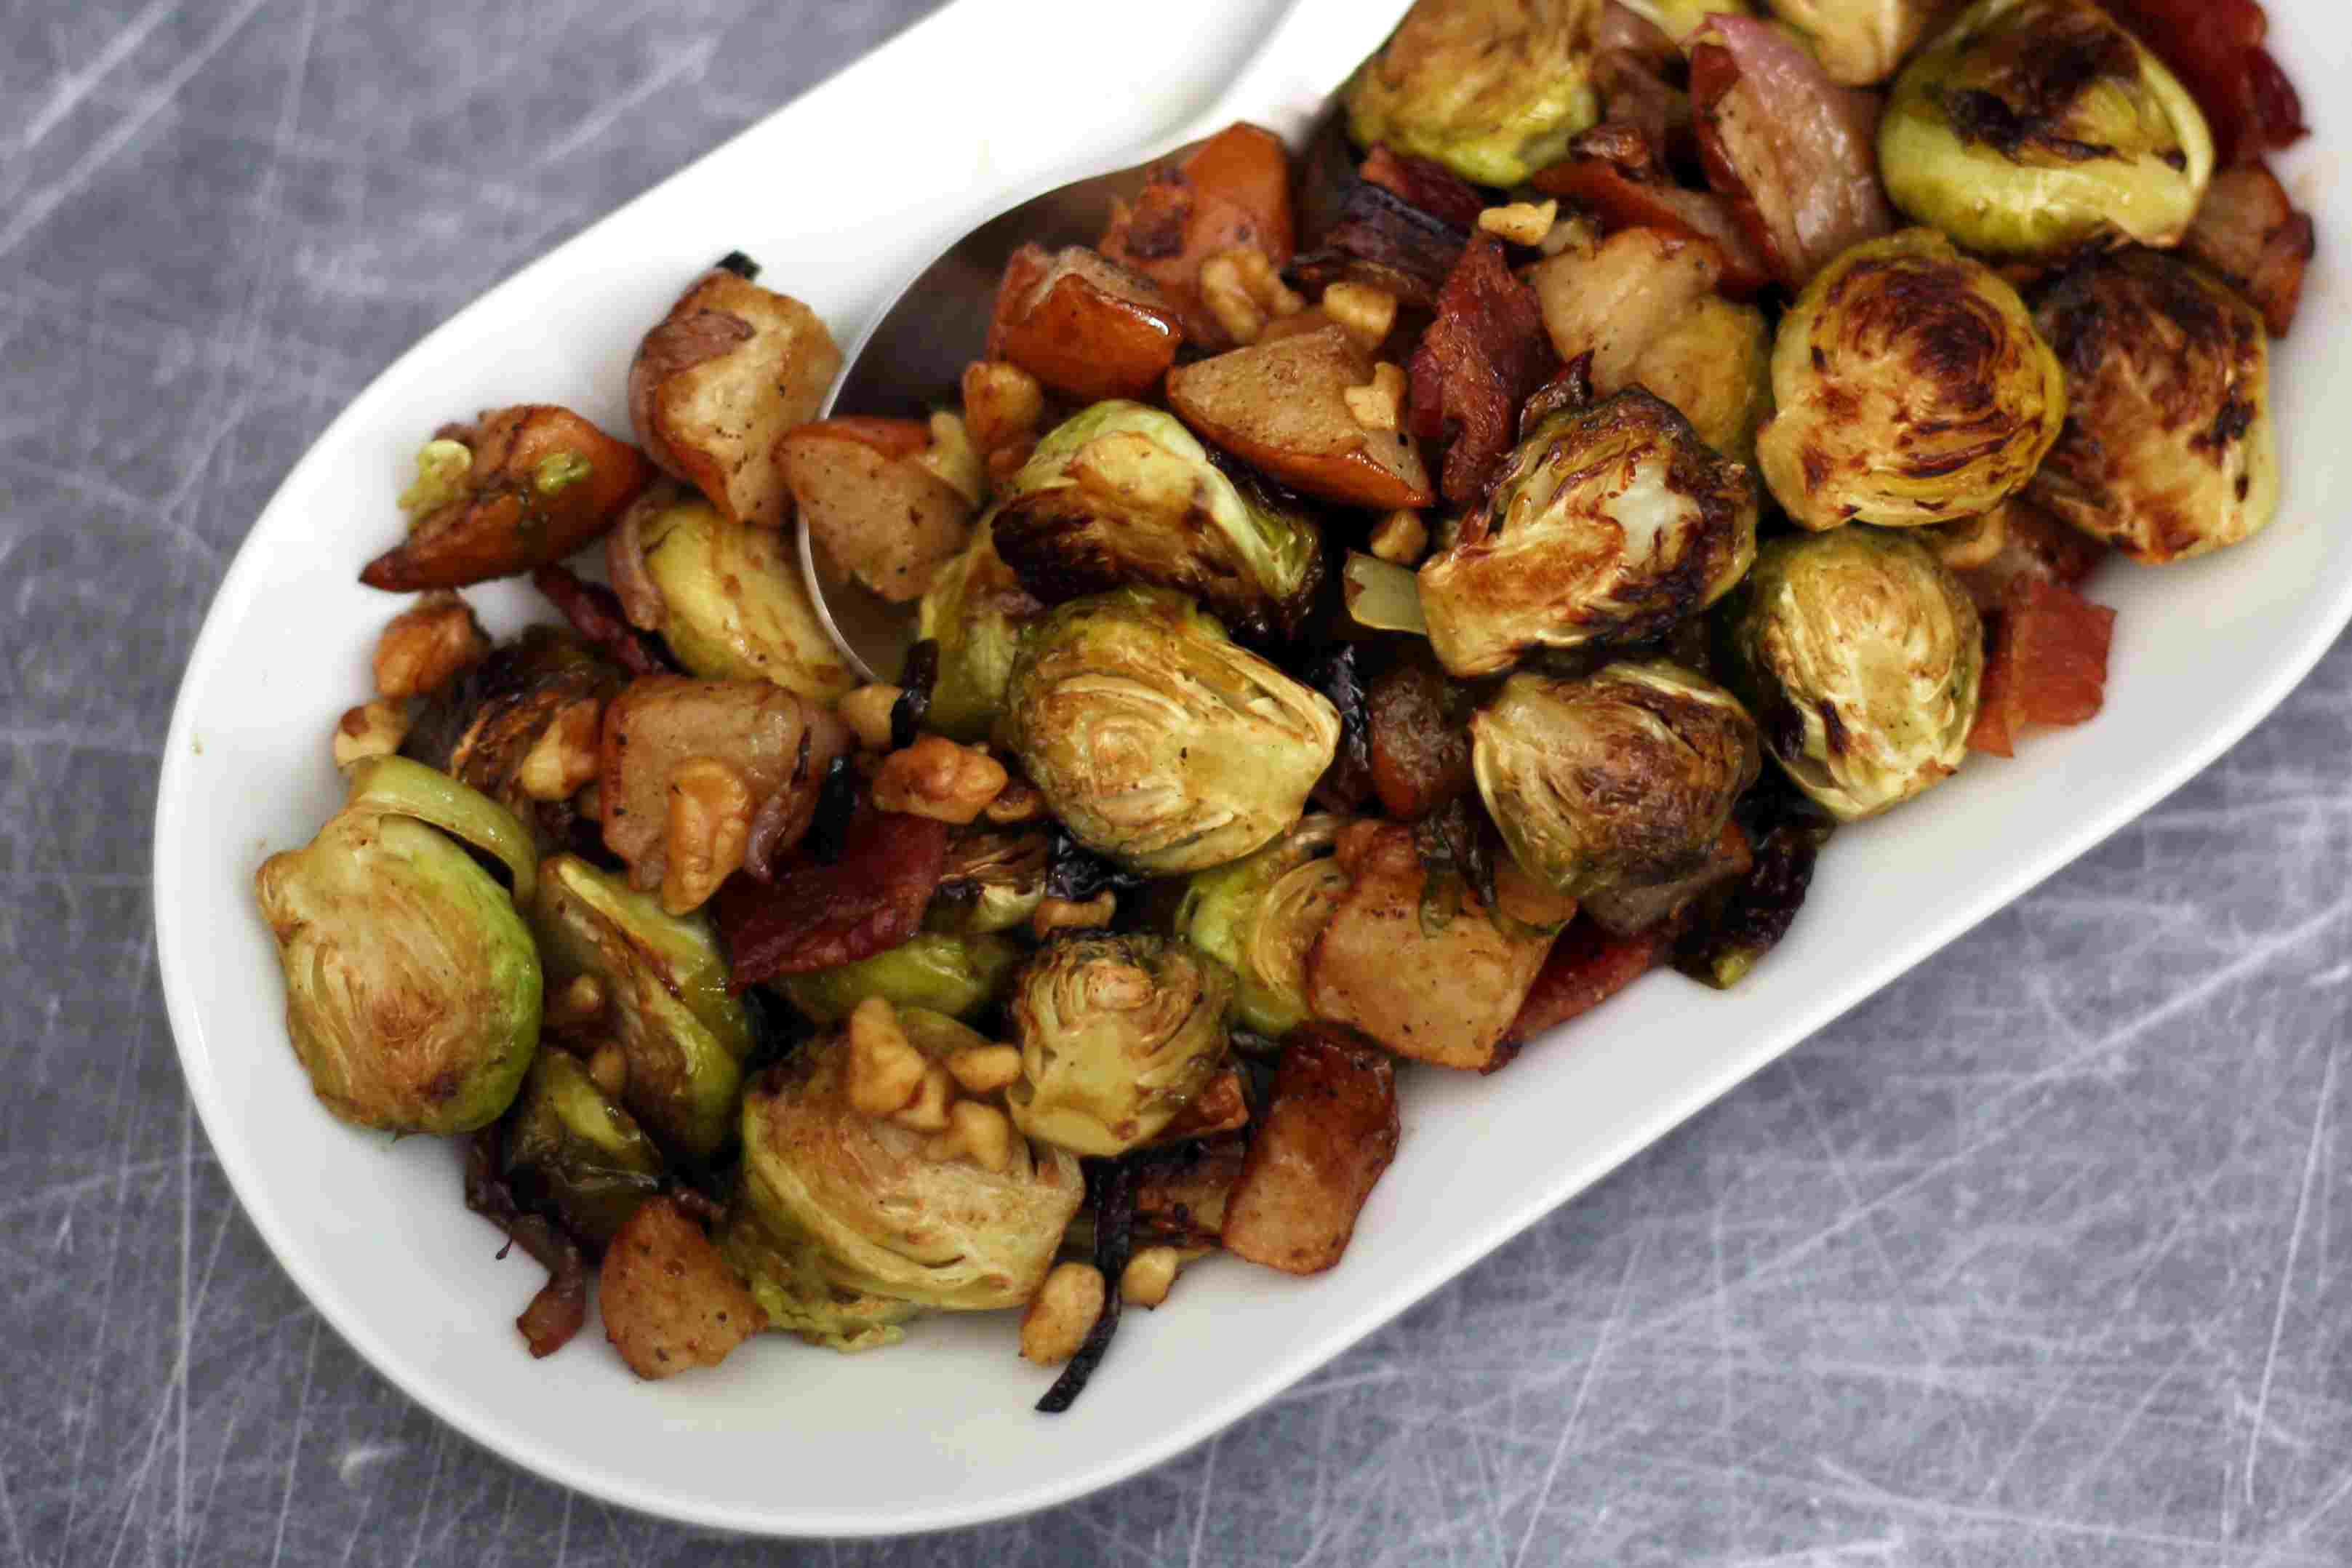 brussels sprouts with pears, walnuts, and bacon